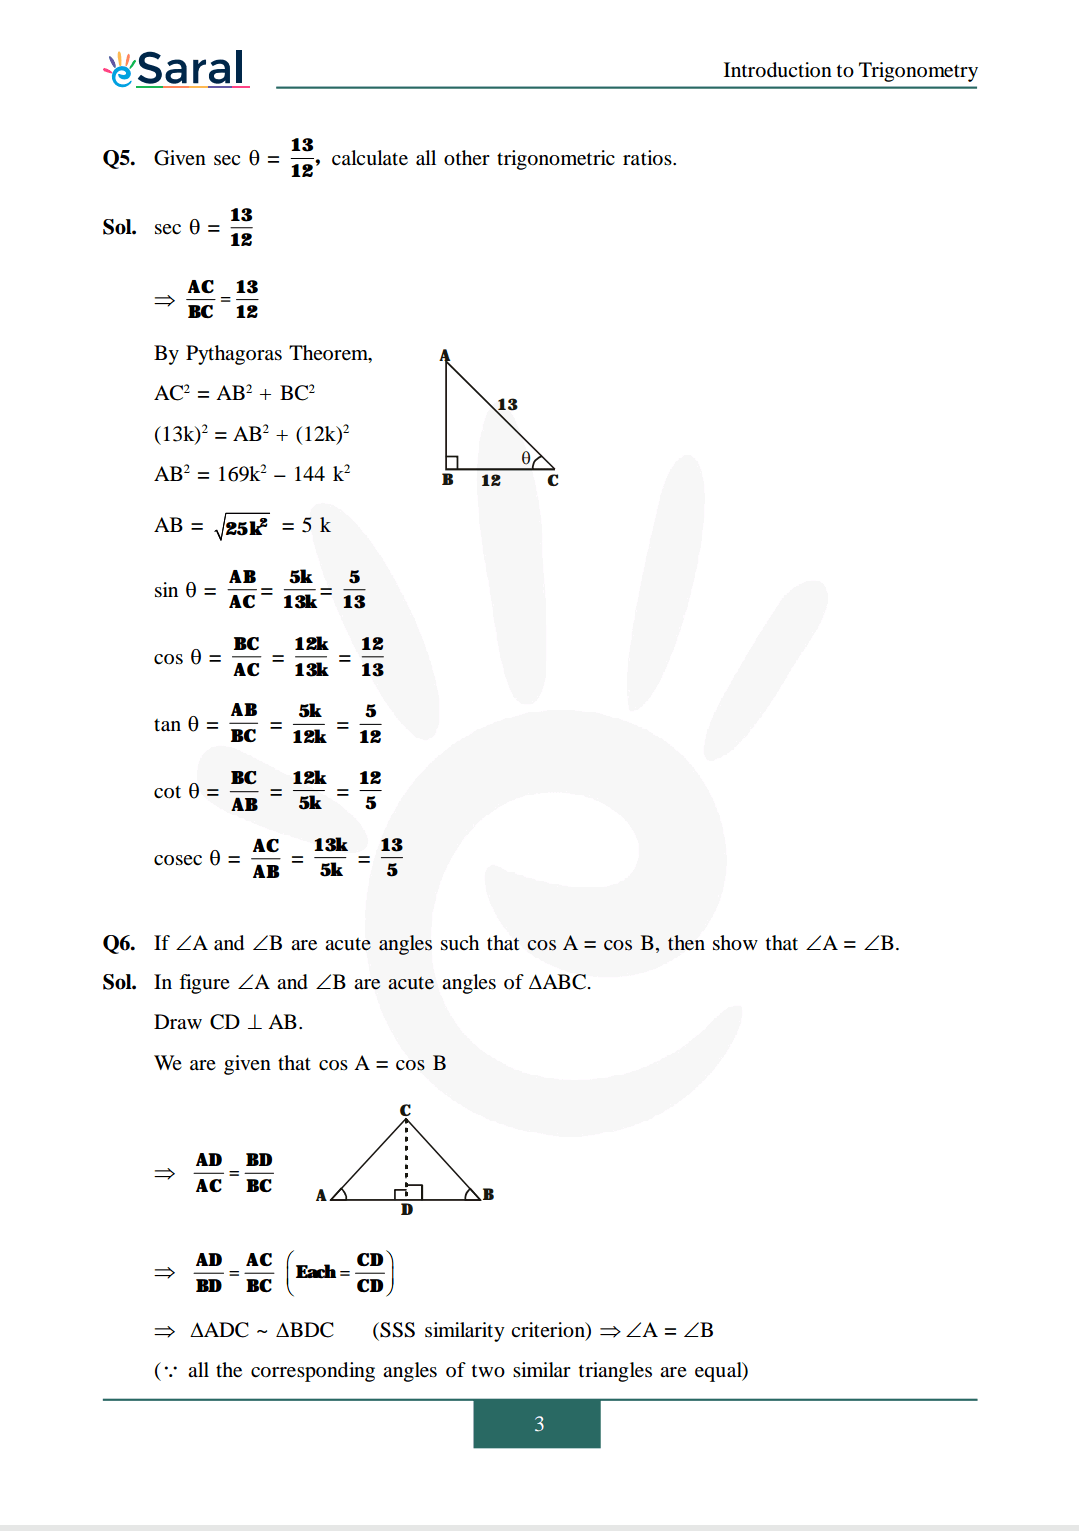 Class 10 Maths Chapter 8 exercise 8.1 solutions image 3